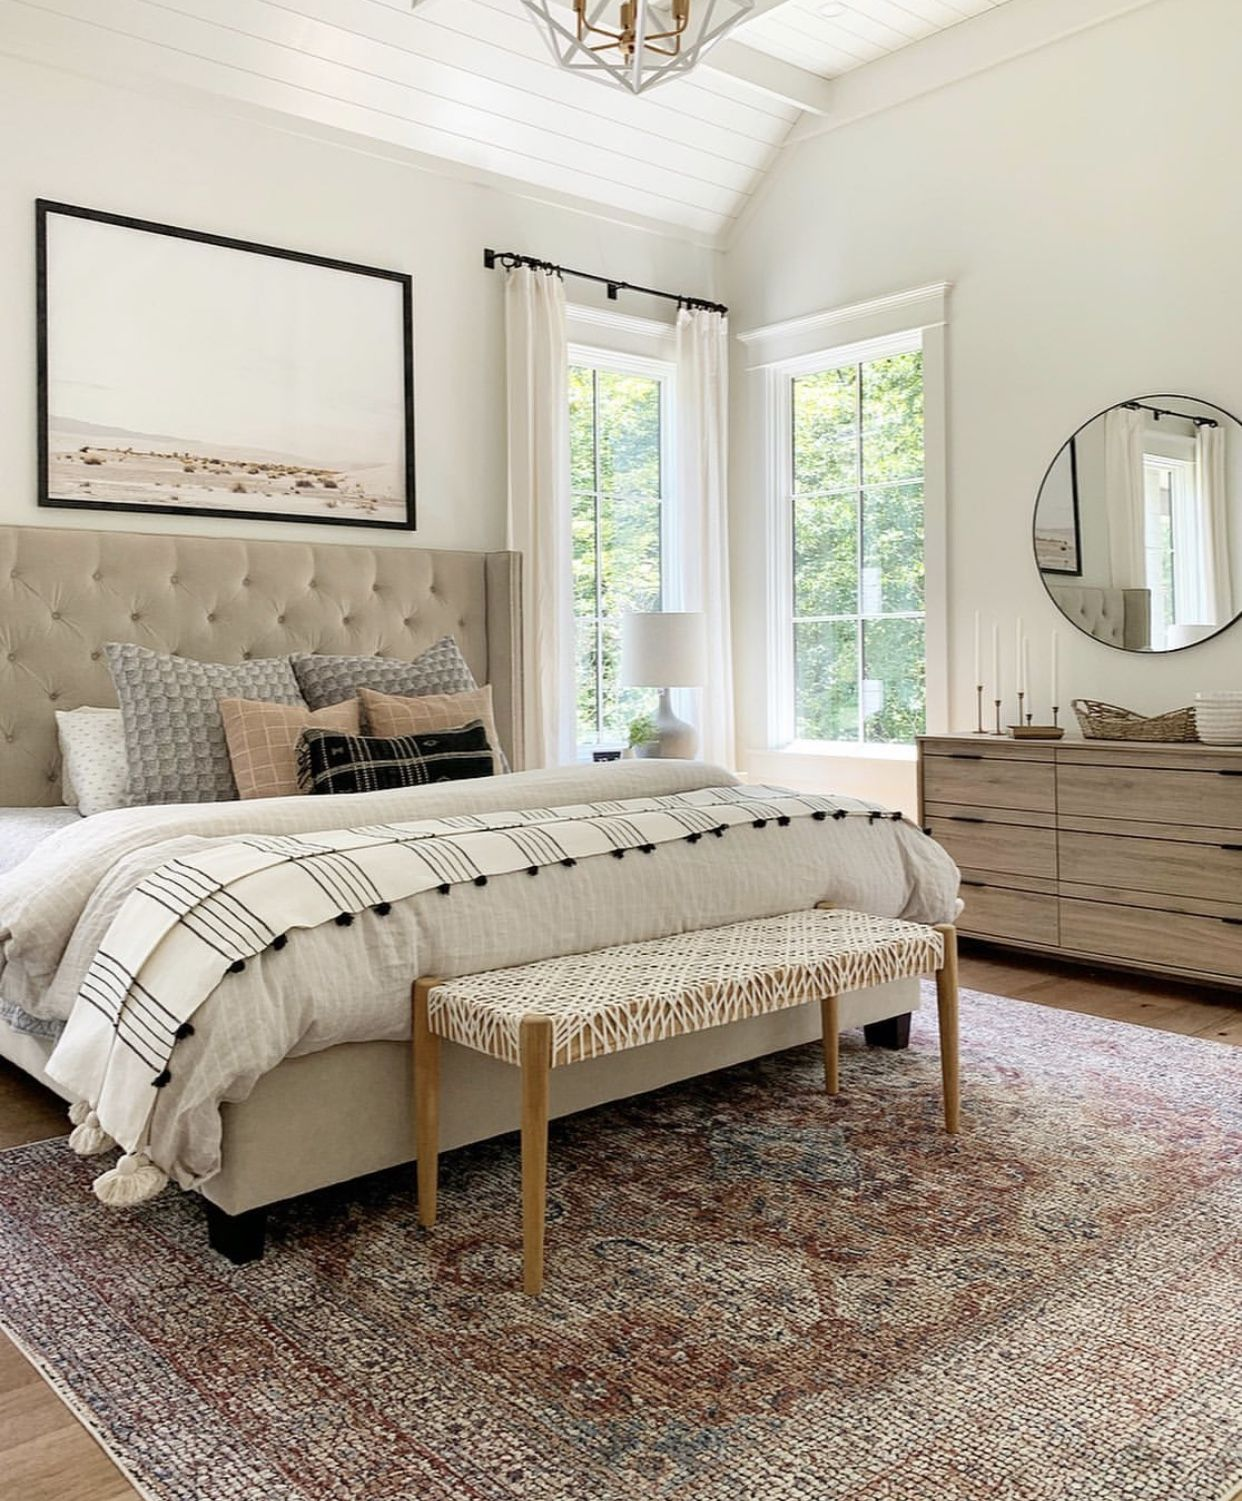 modern farmhouse bedroom #modernfarmhousebedroom